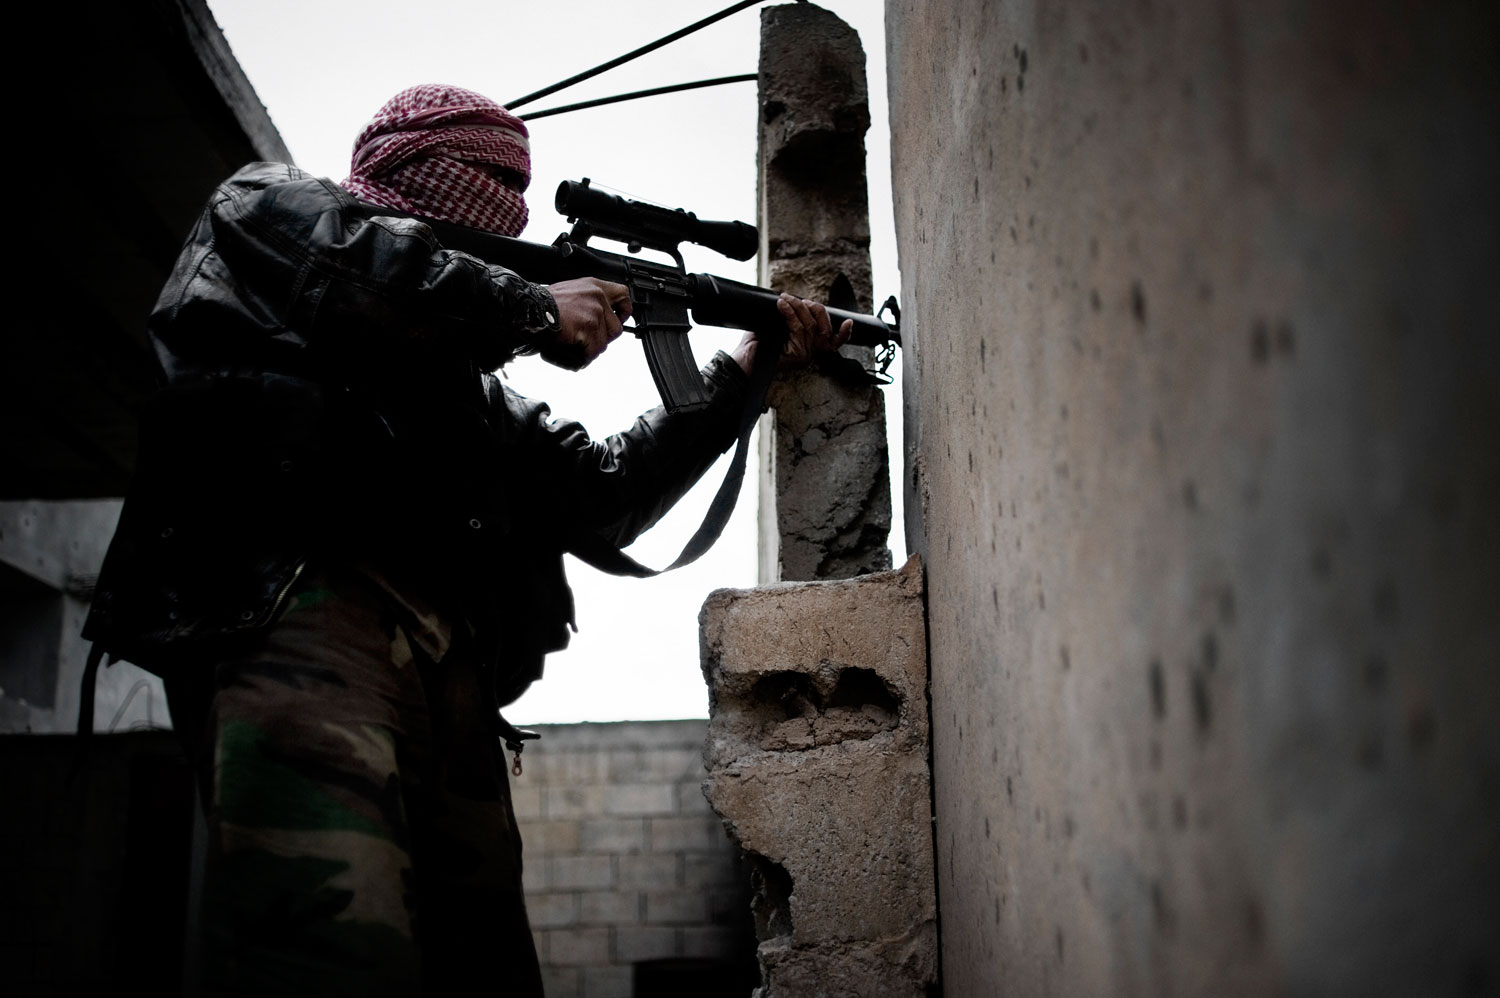 A member of the Free Syrian Army shoots at the Syrian army in Al Qsair. Jan. 24, 2012